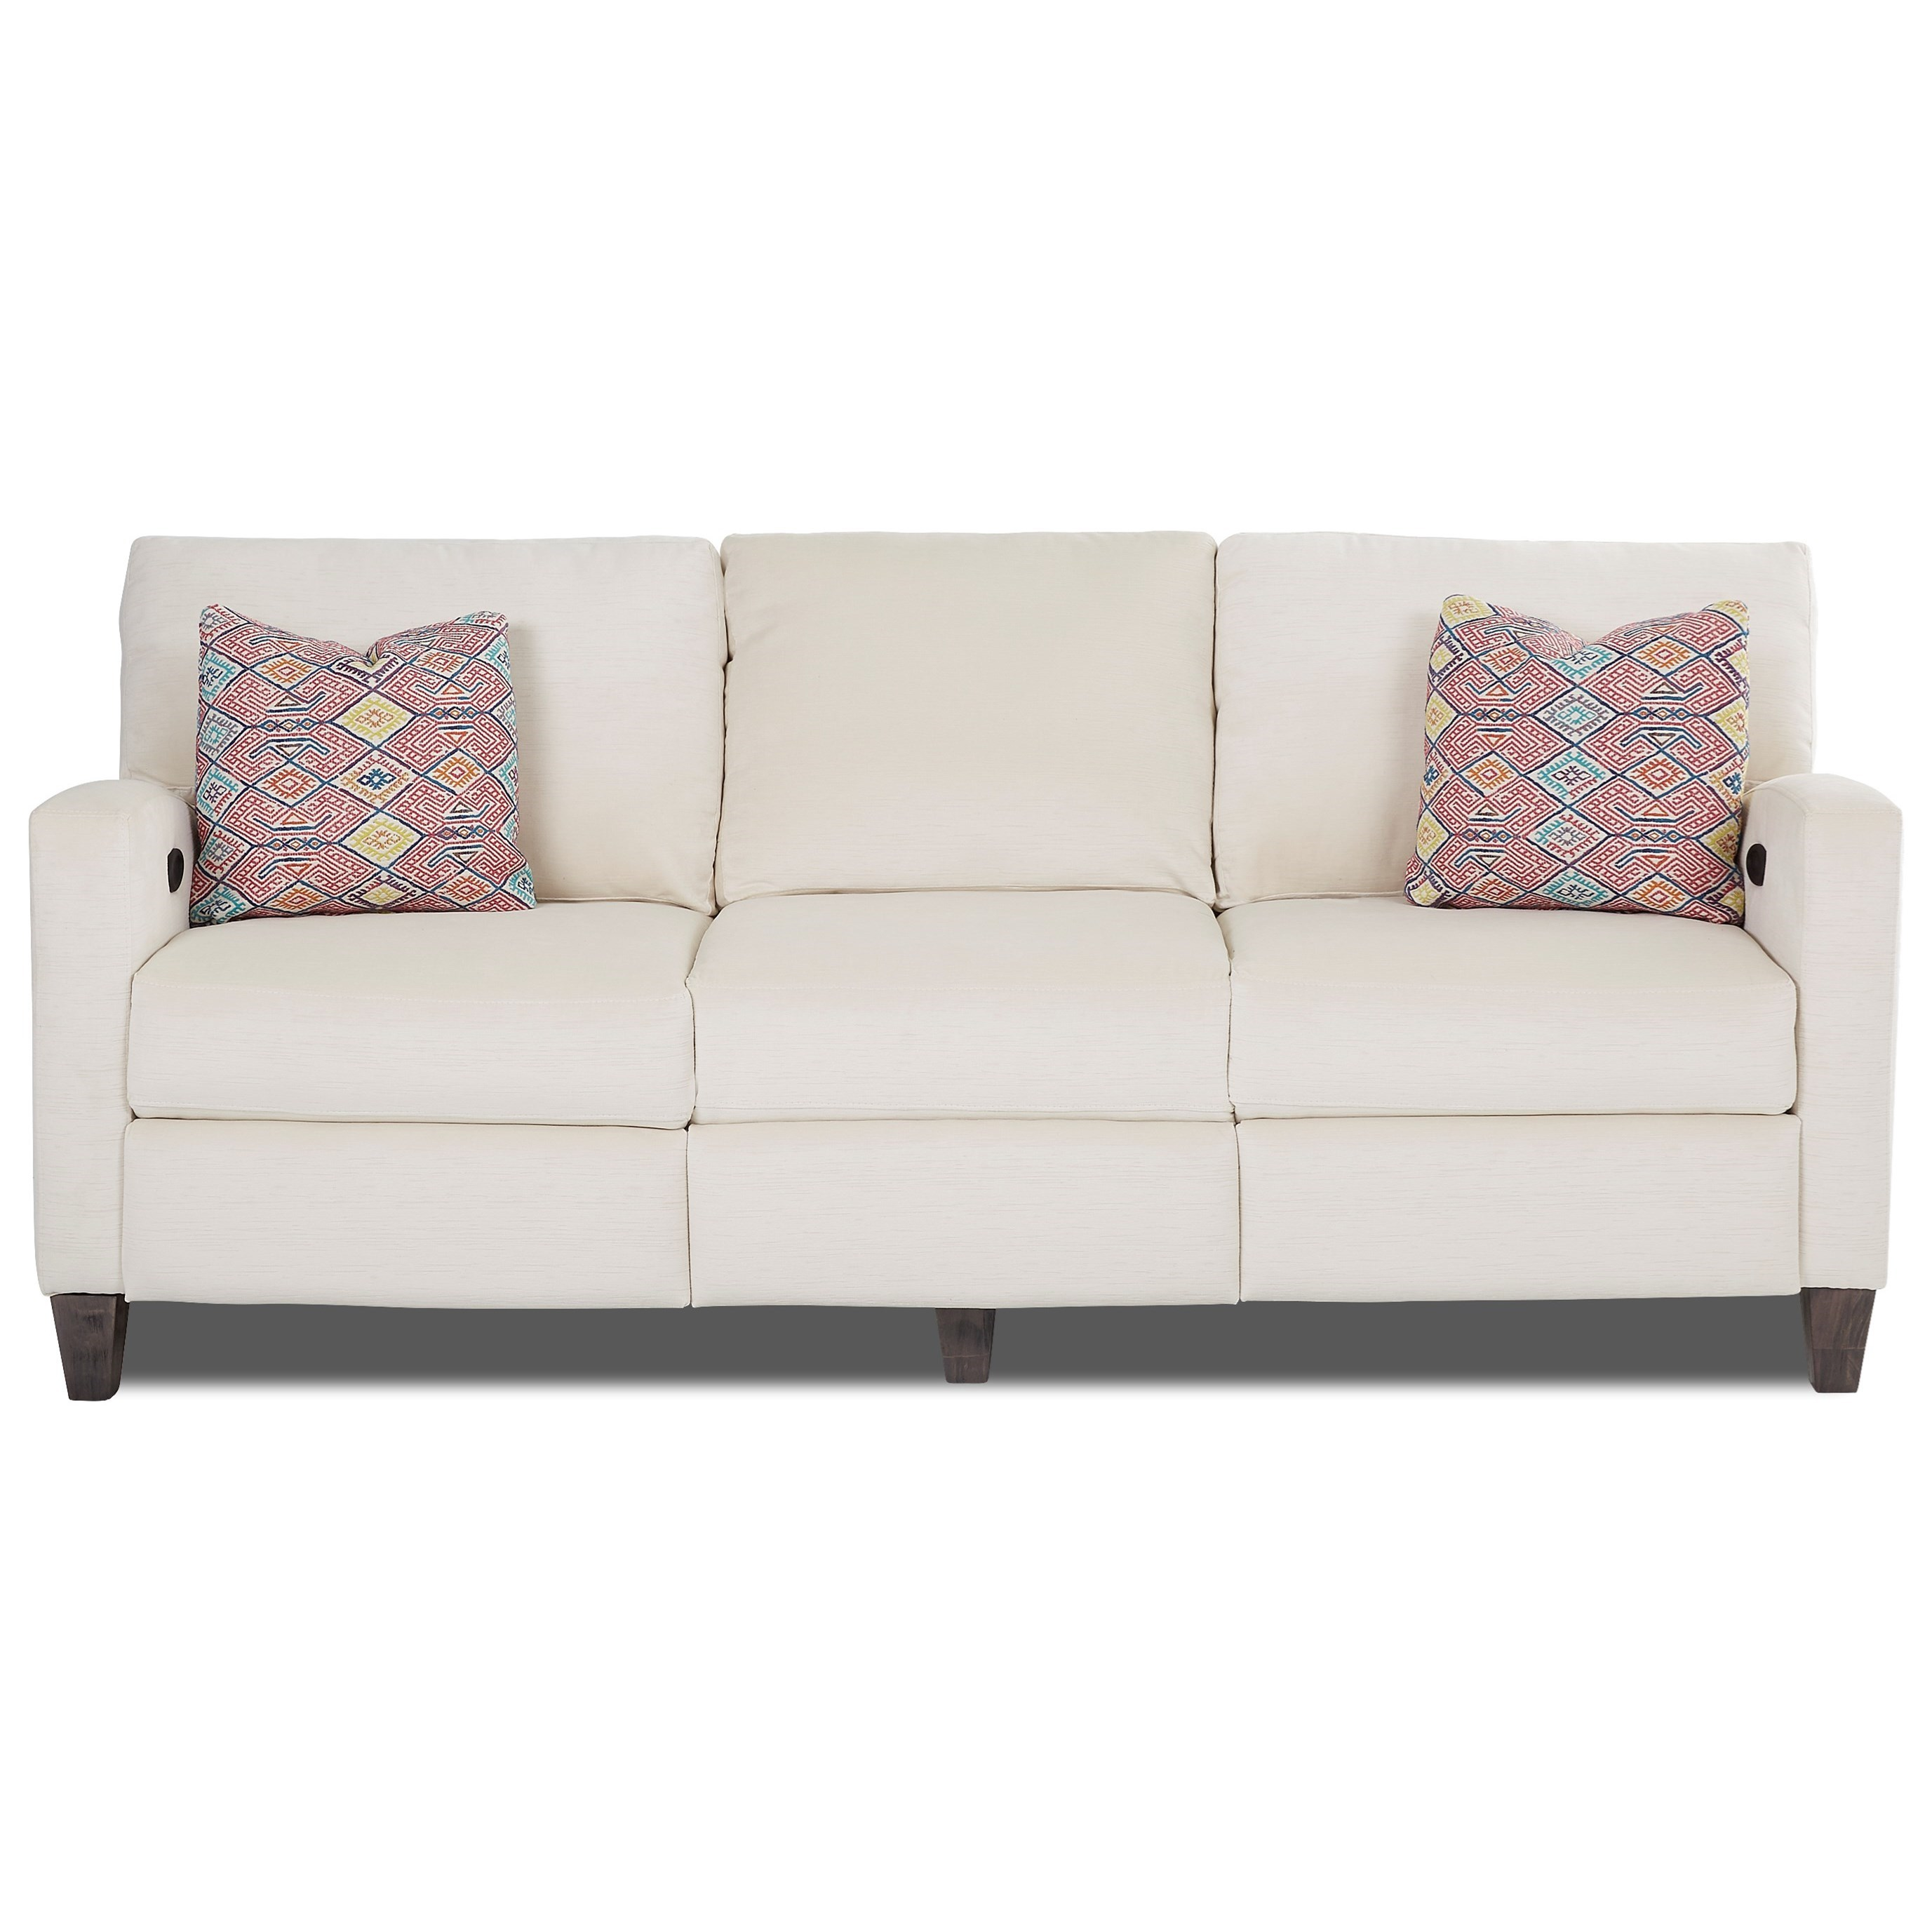 Colleen Power Hybrid Sofa by Klaussner at Northeast Factory Direct